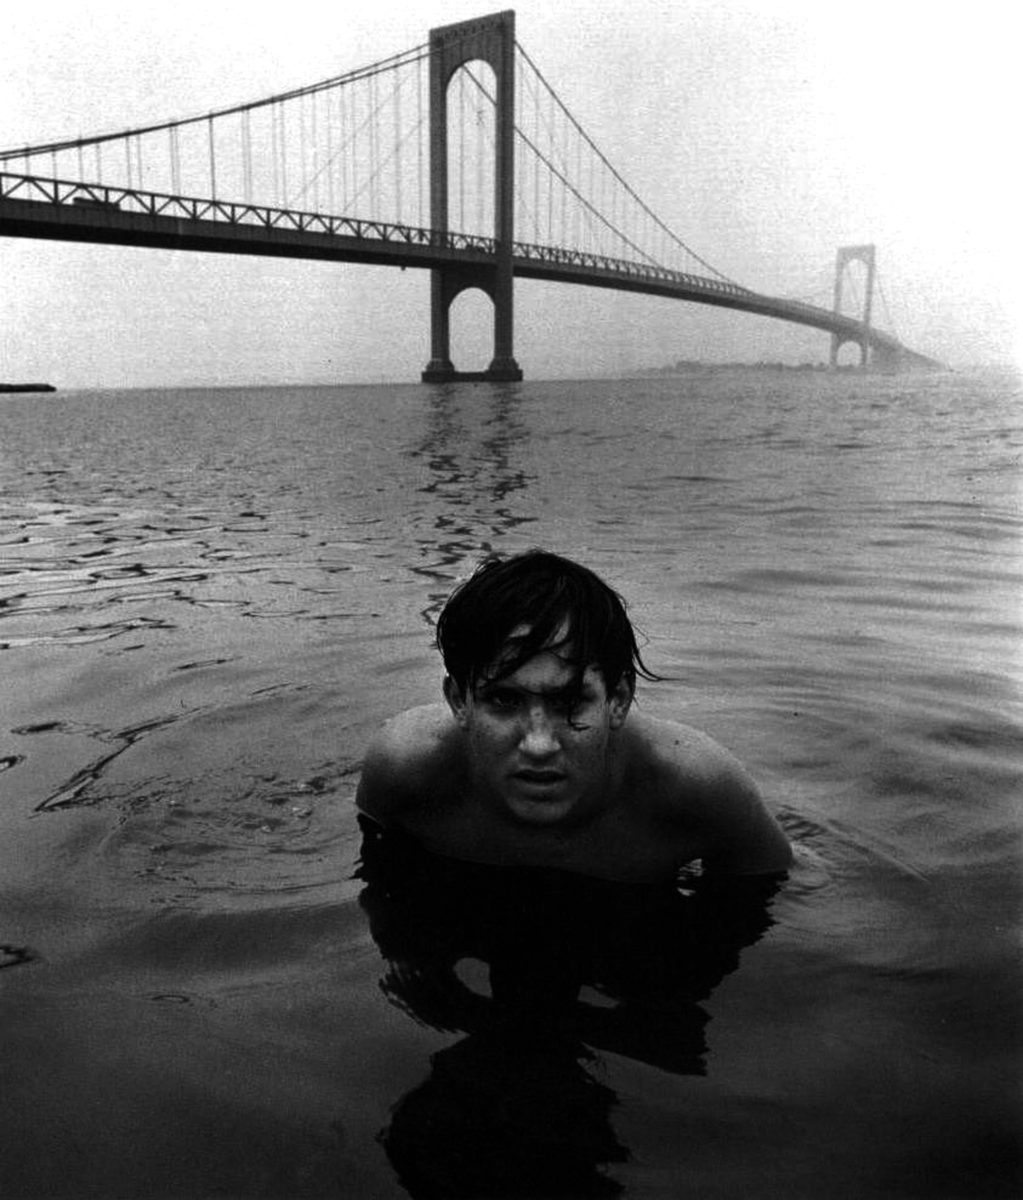 Arthur Tress, Boy in Water under bridge, 1970 with Paci Contemporary